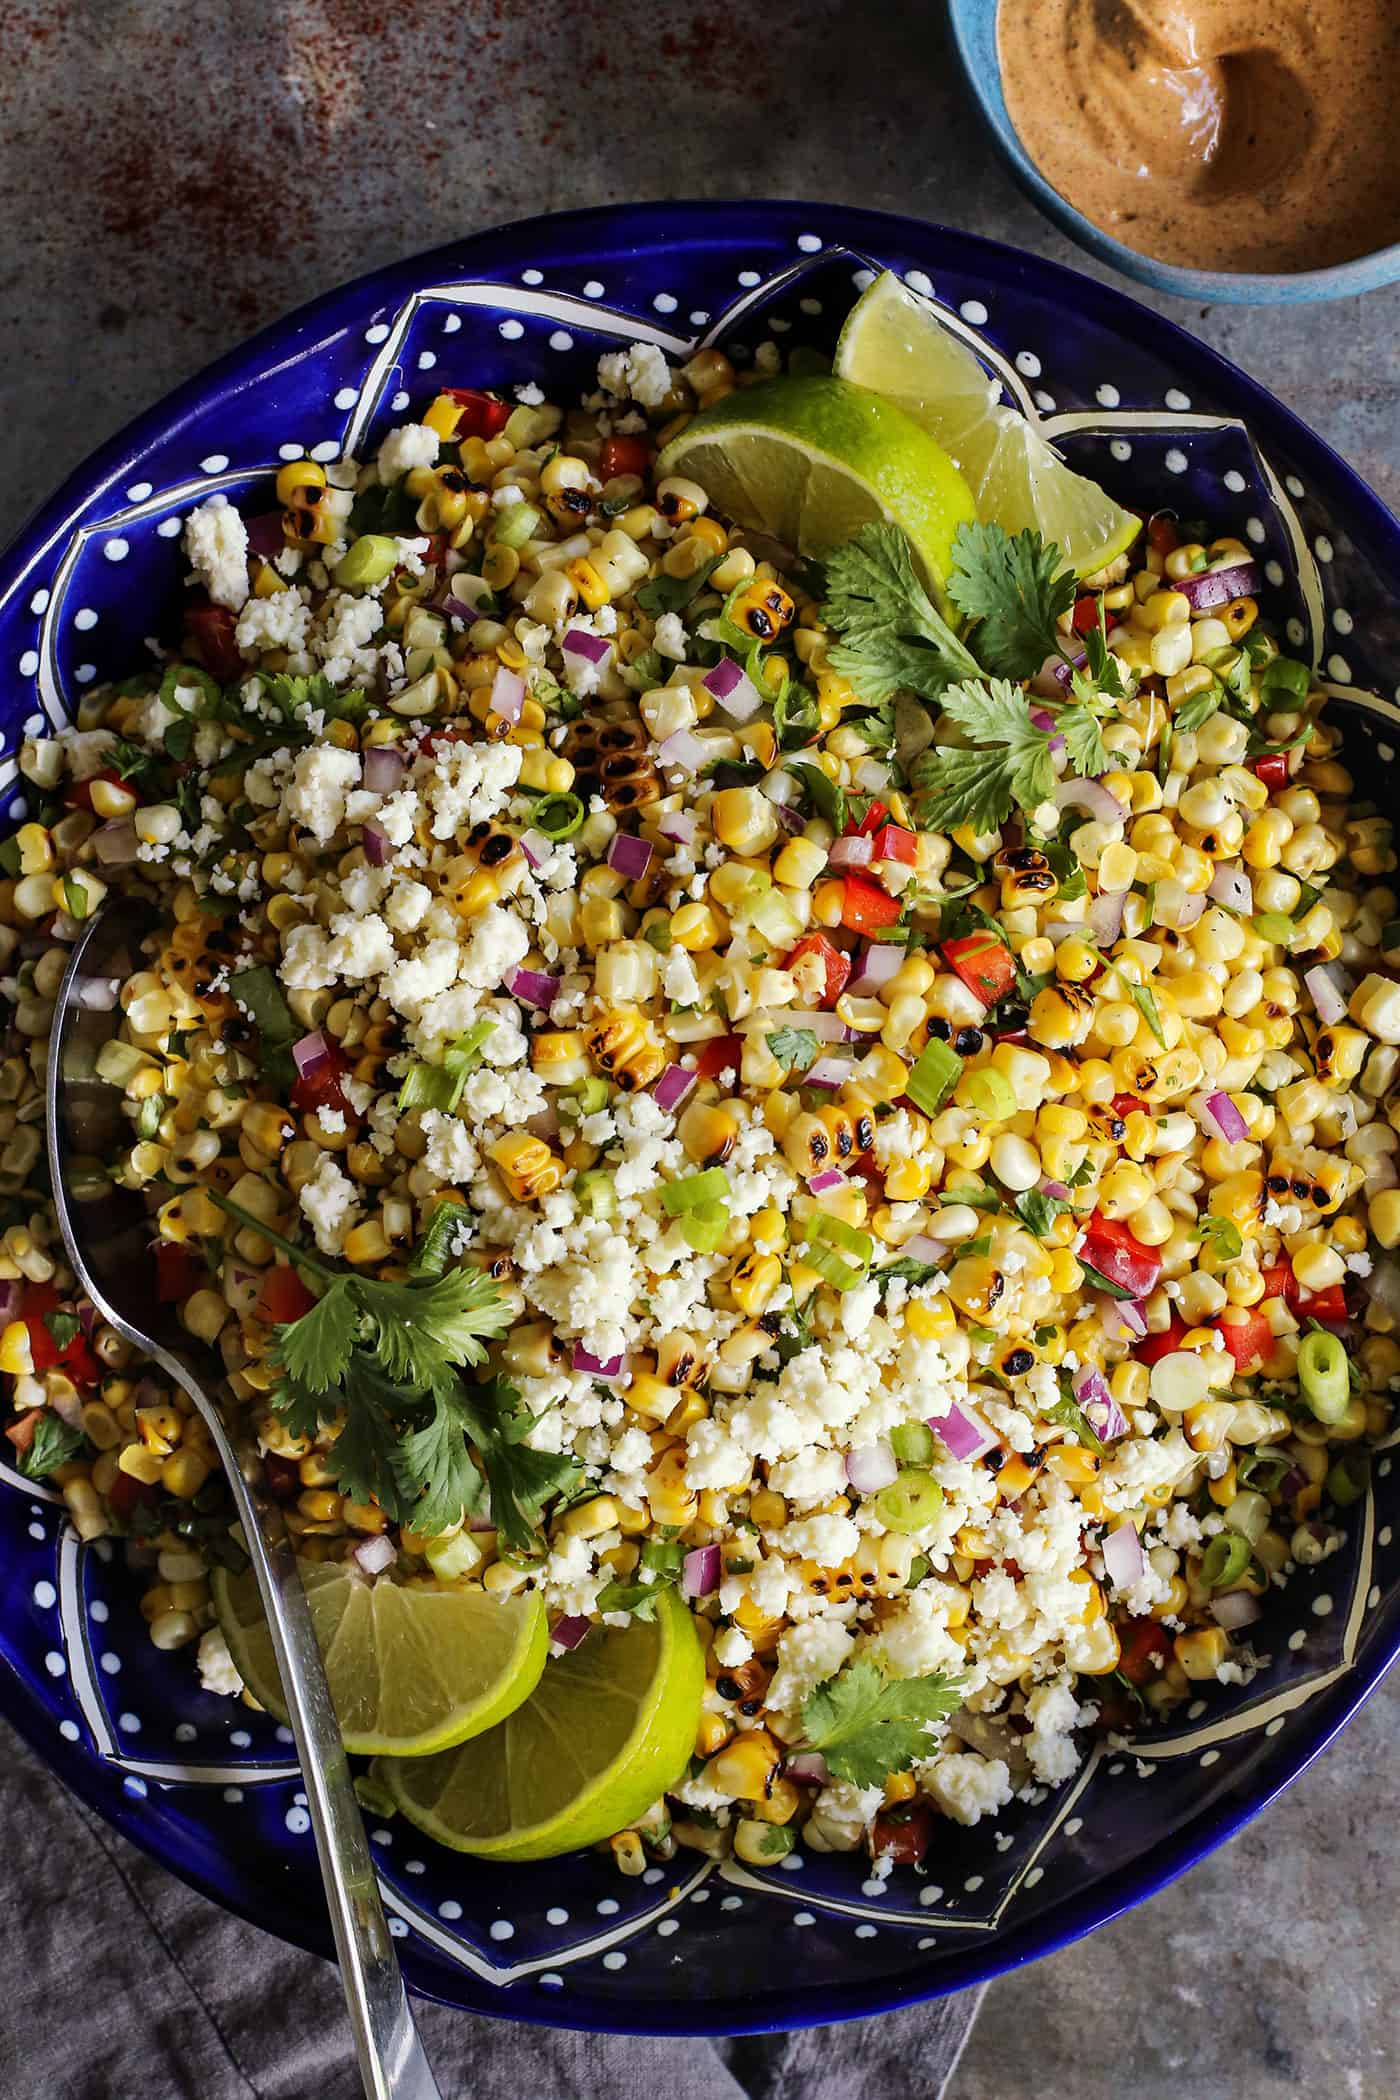 Mexican corn salad in a dark blue pottery bowl